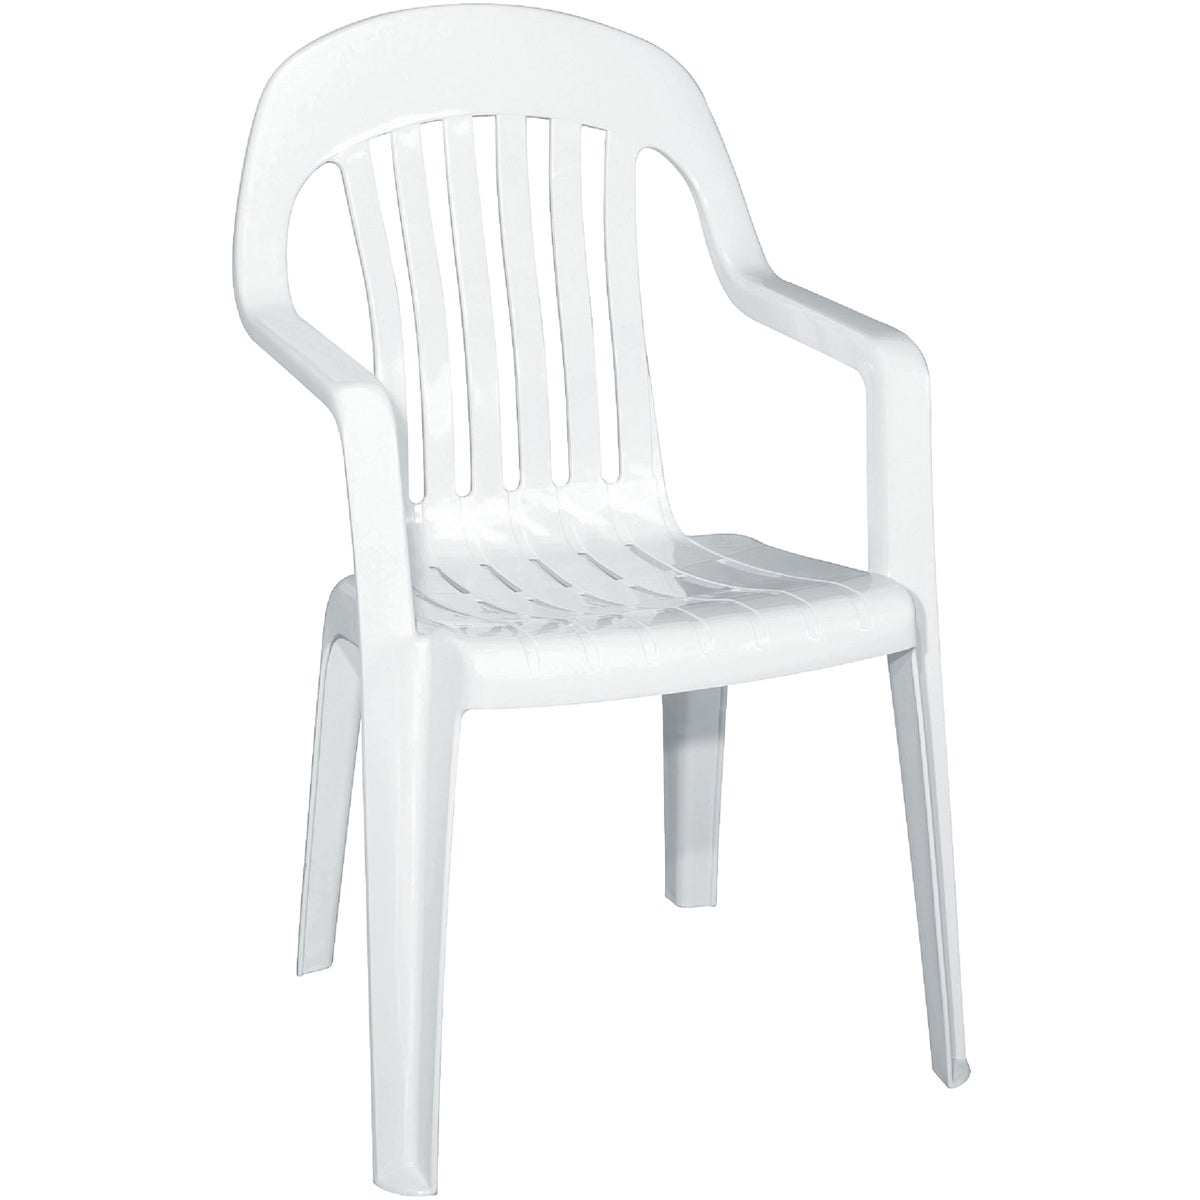 WHITE HIGH BACK CHAIR - 8254-48-3700 by Adams Mfg Patio Furn